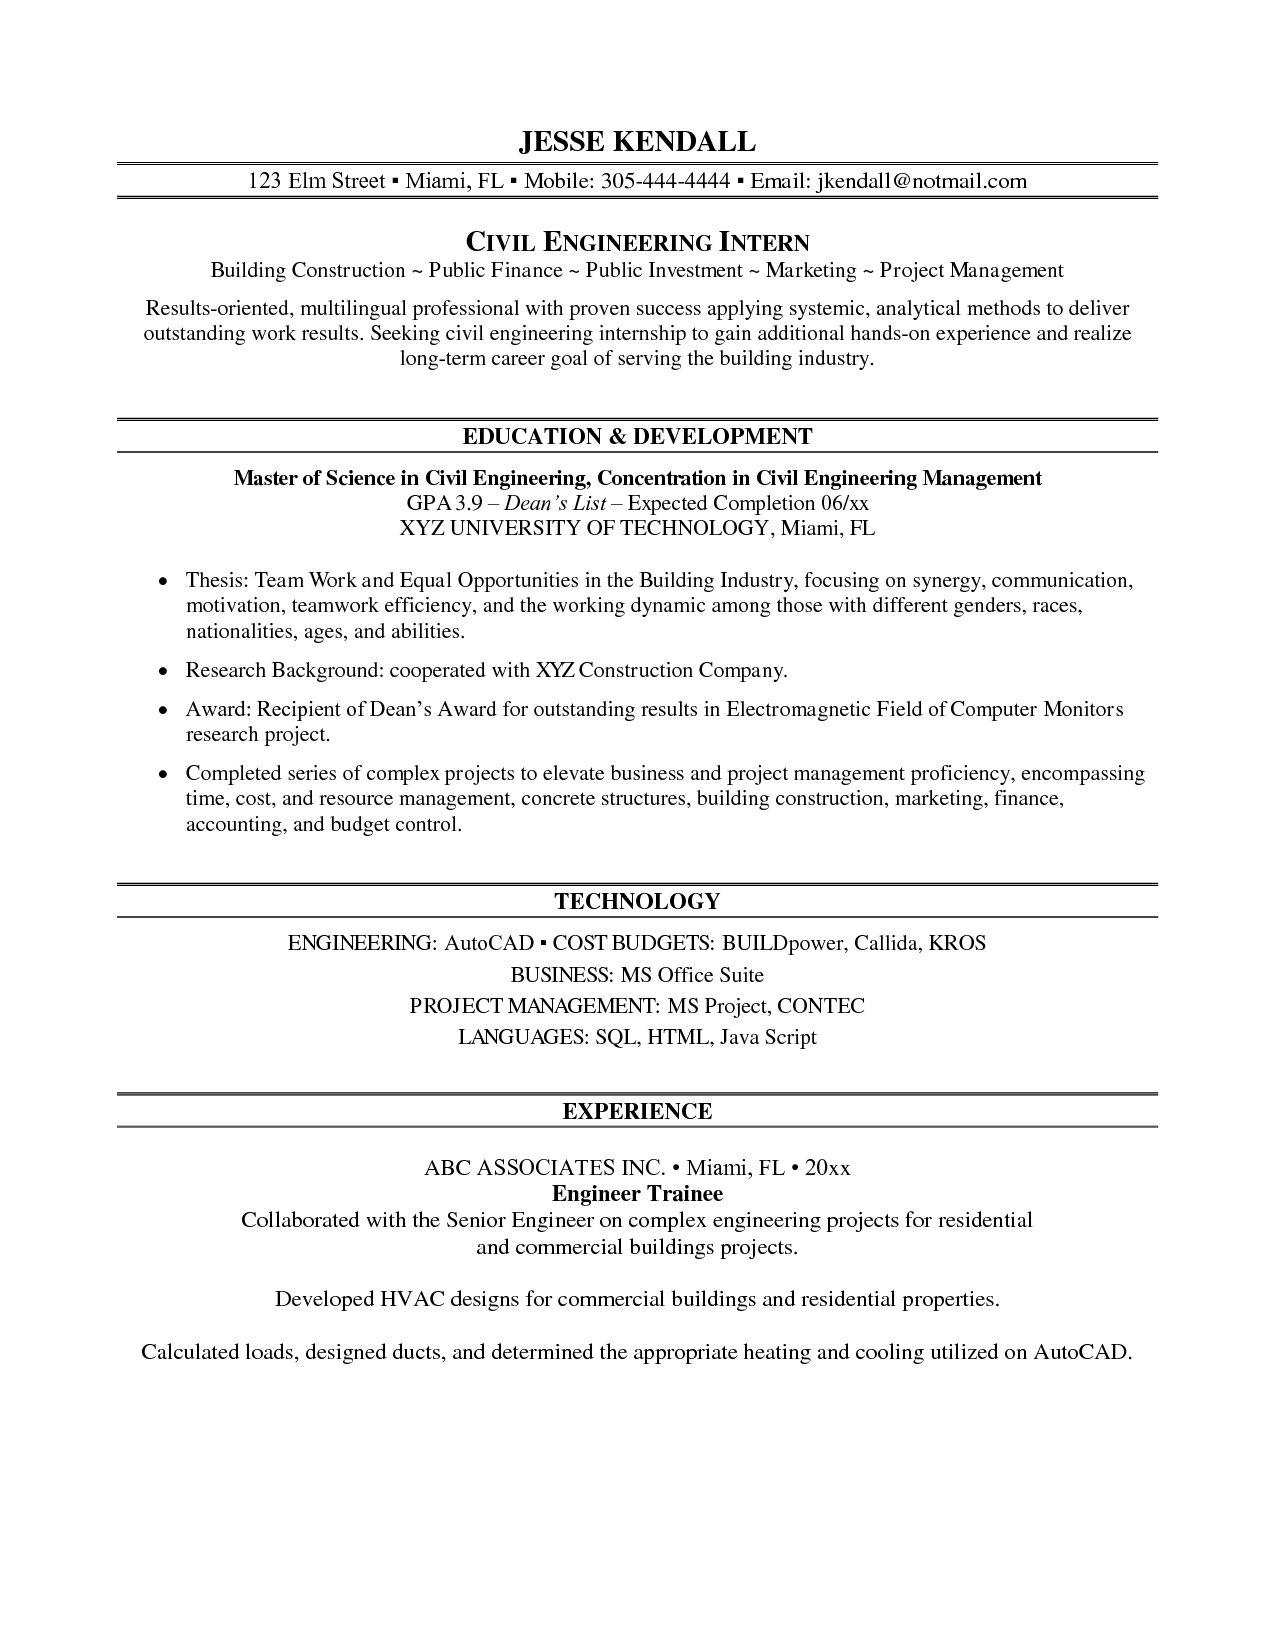 Pin by resumejob on Resume Job | Pinterest | Job resume format, Job ...